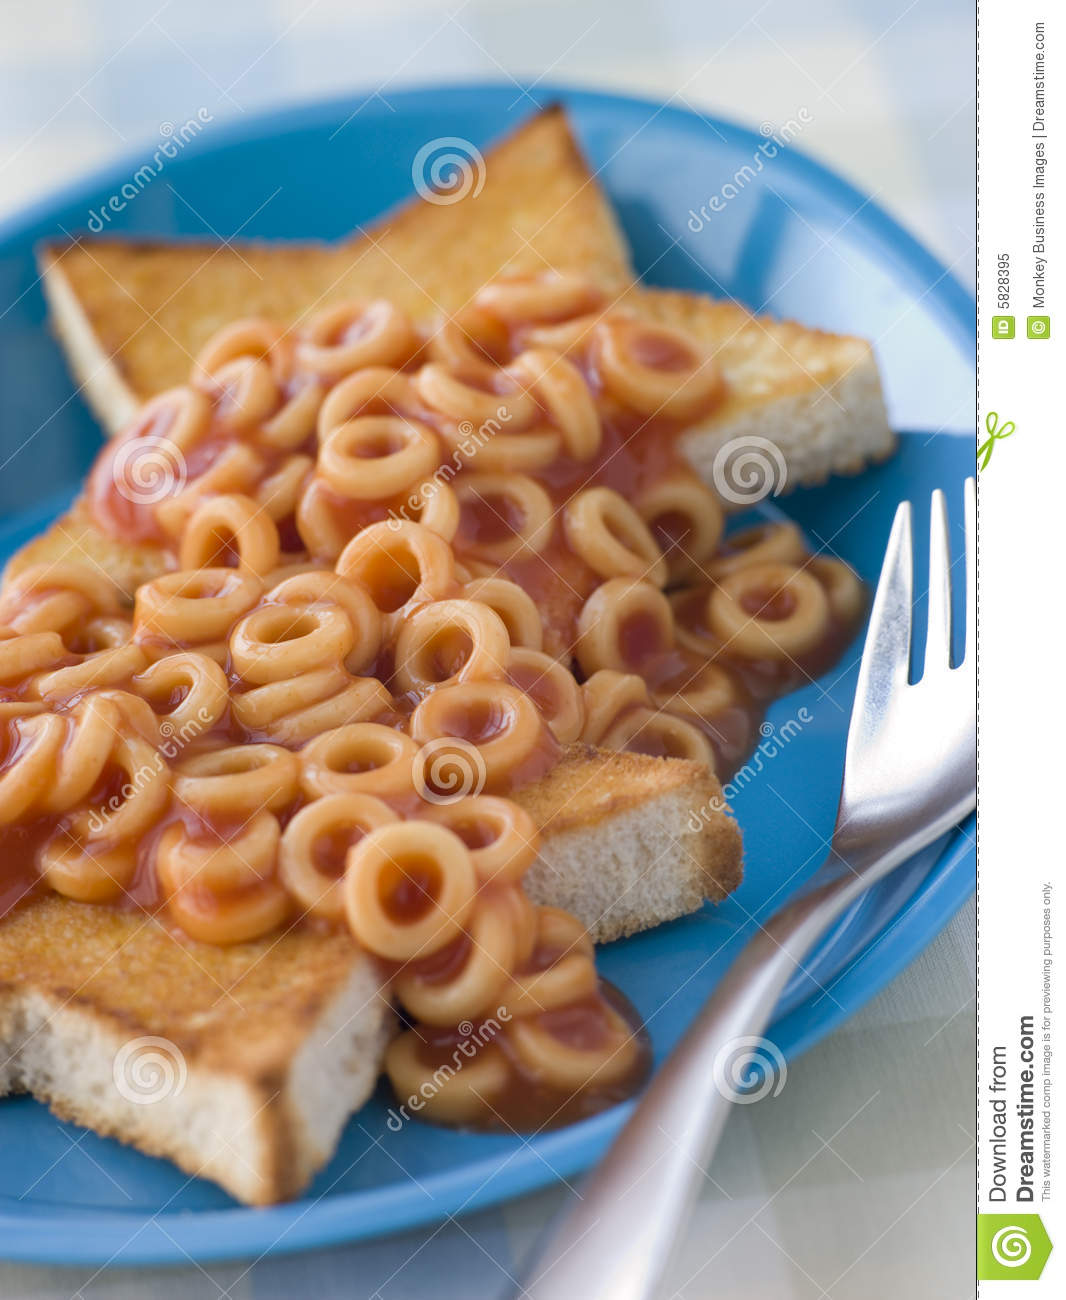 Spaghetti Hoops on Star Shaped Toast